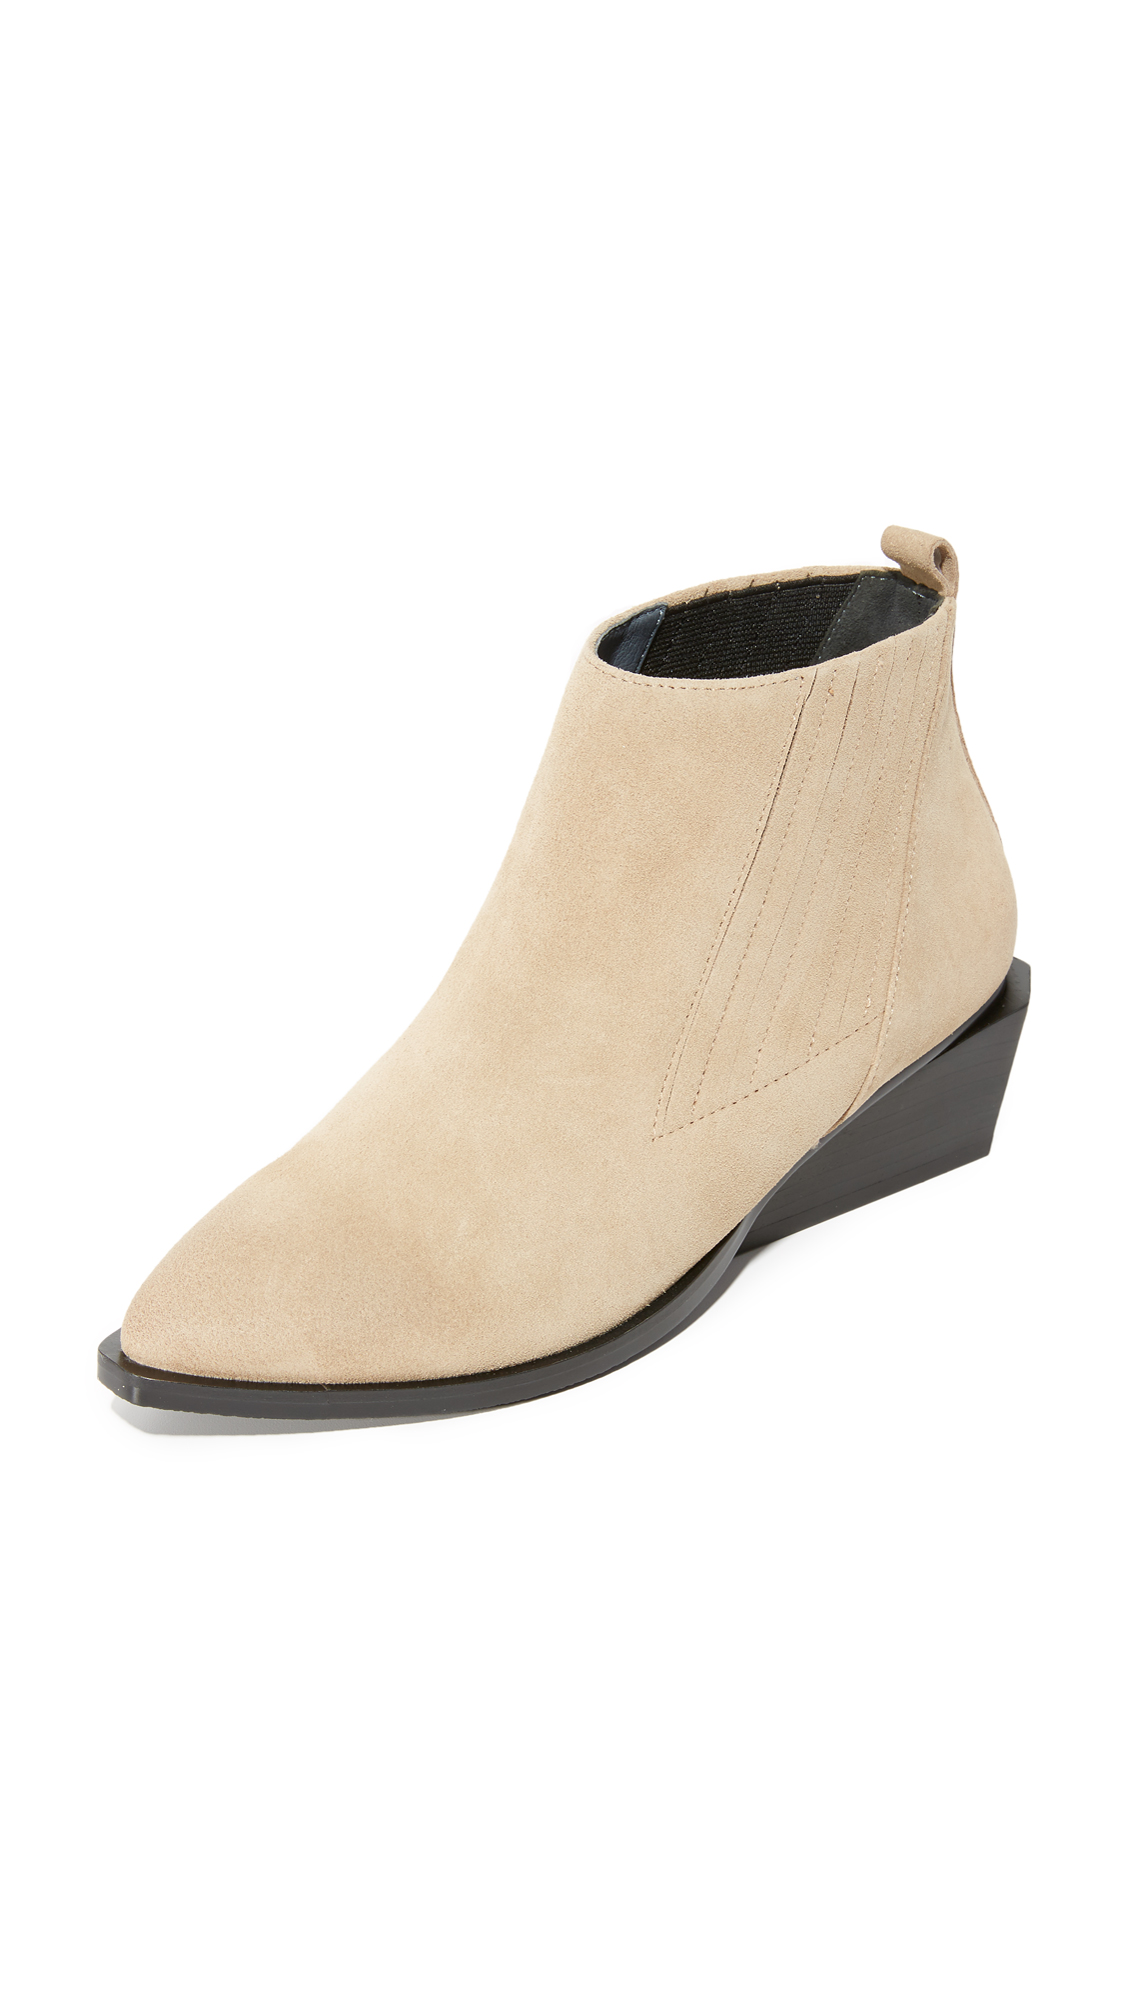 United Nude West Booties - Sand